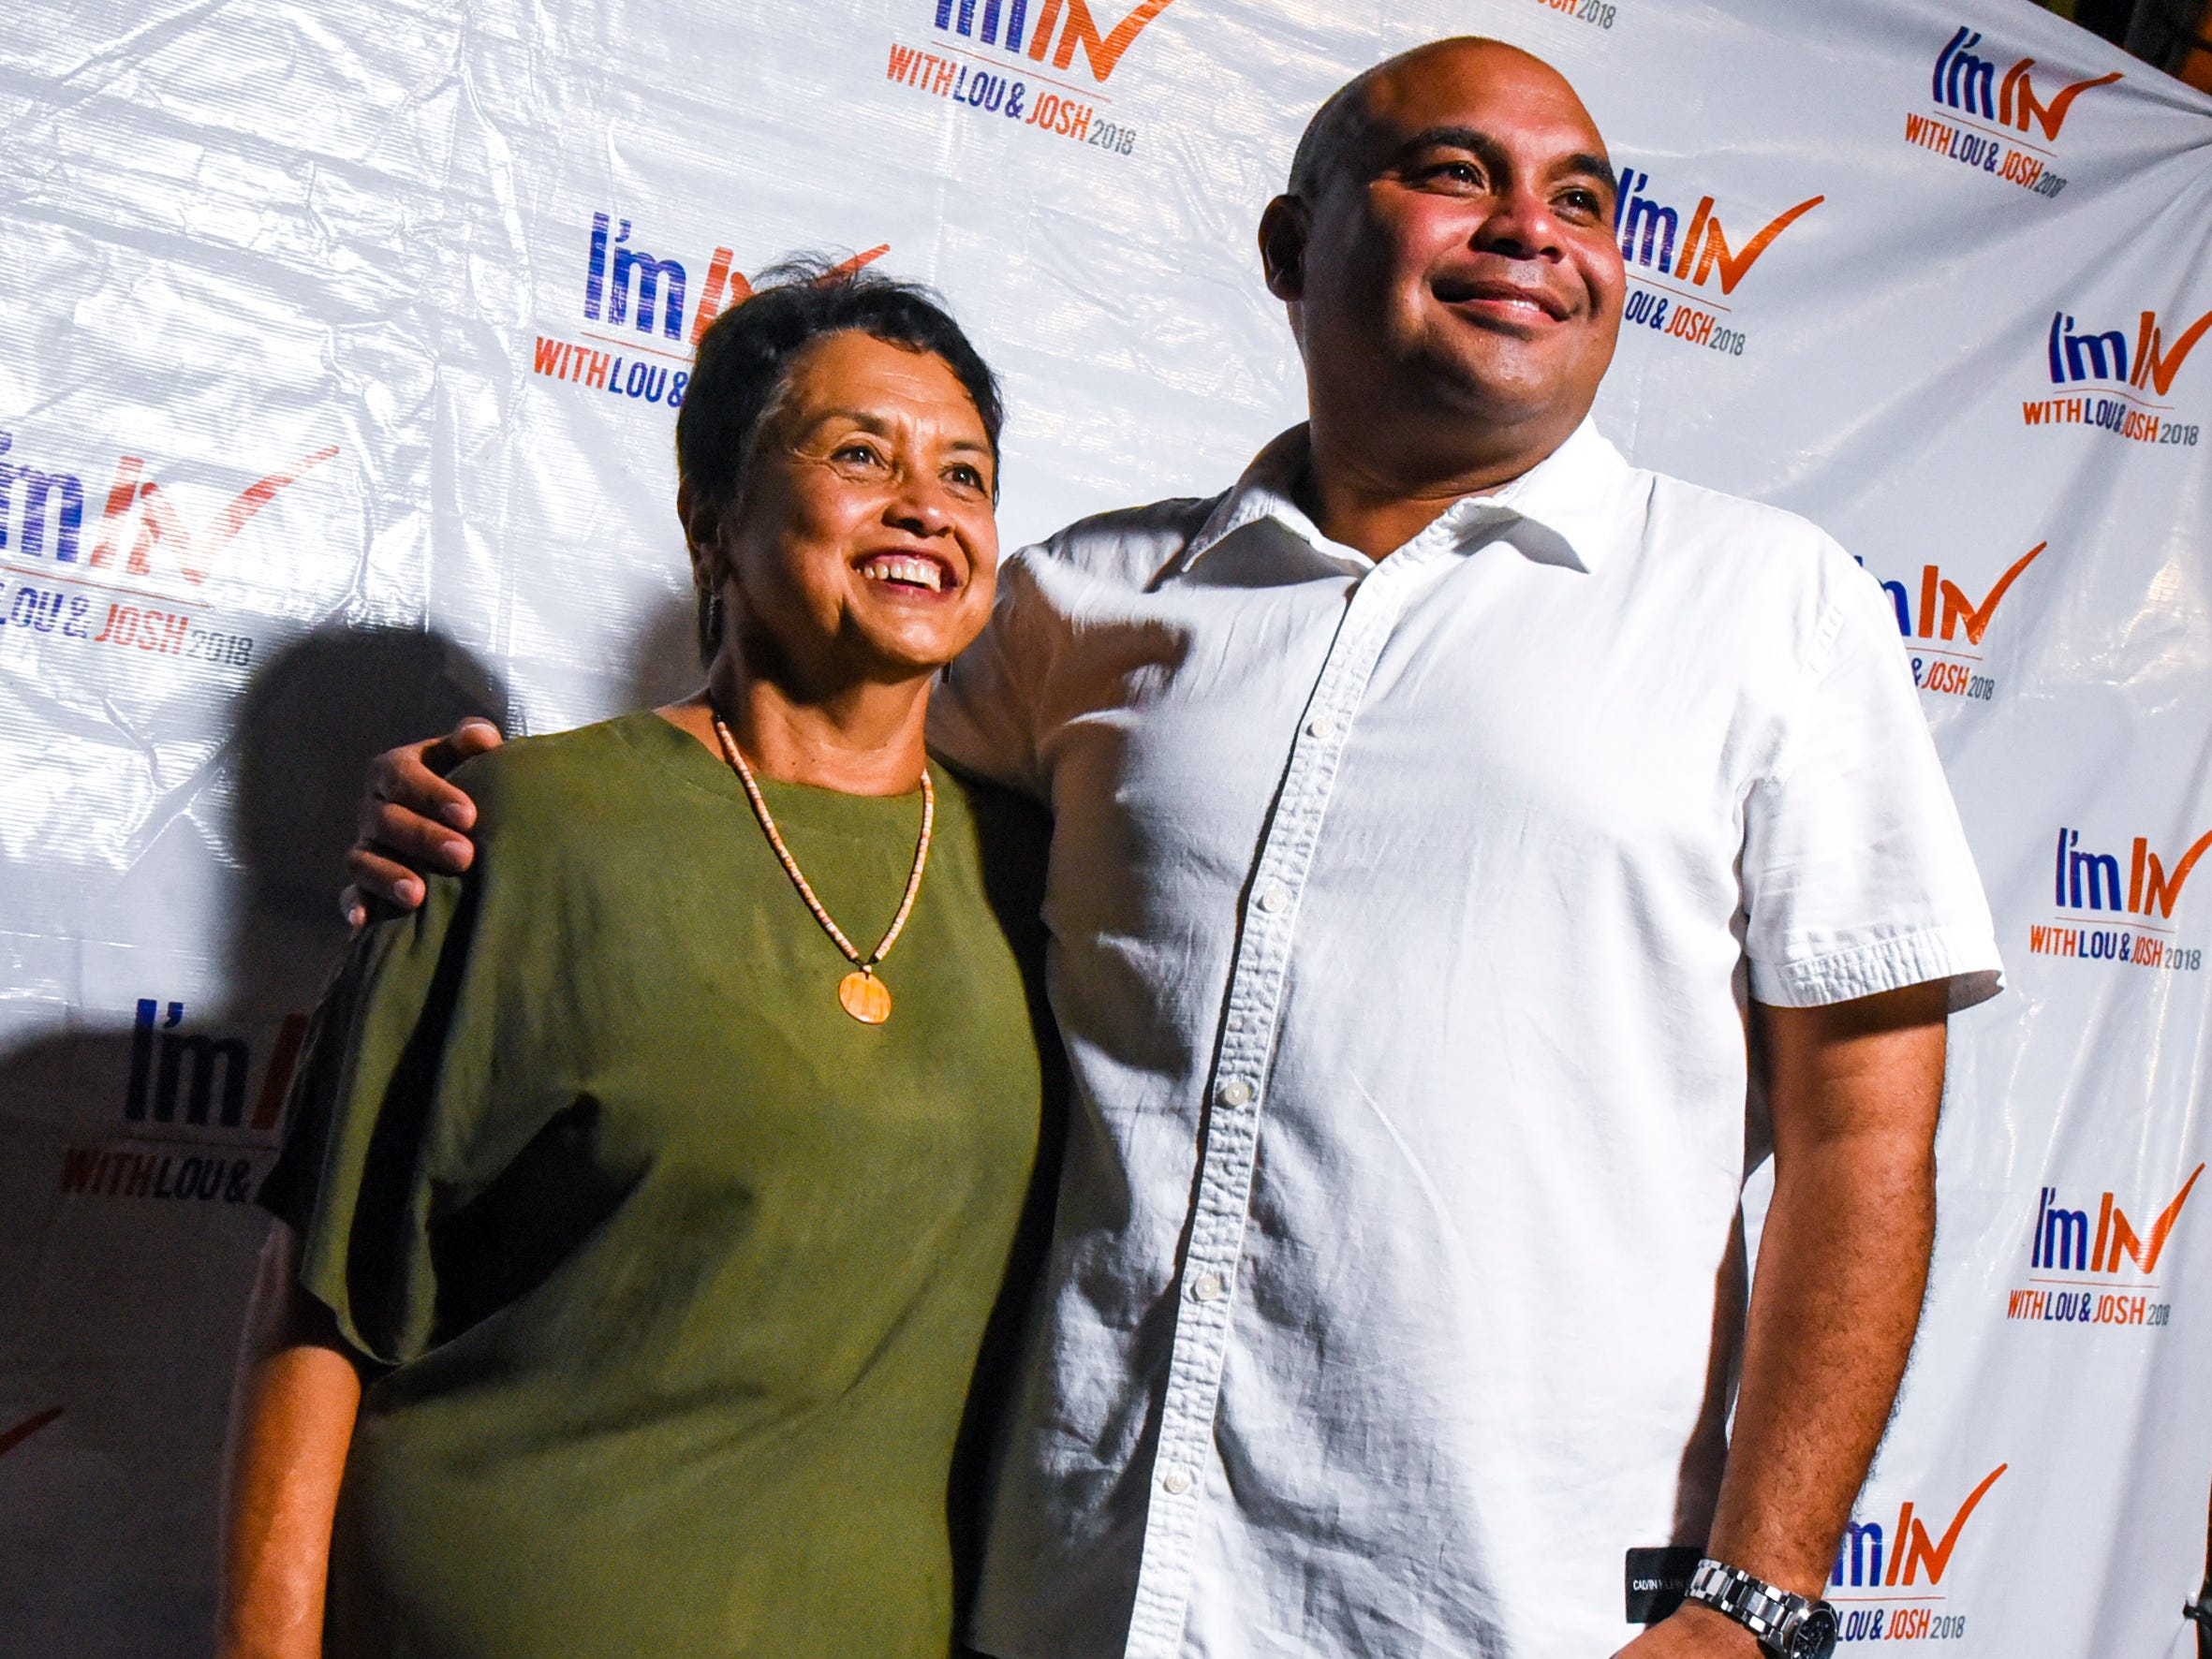 Democratic gubernatorial candidate, Lou Leon Guerrero, and her running mate, Joshua Tenorio,  gather for a phtoo at the team's campaign headquarters in Hagåtña during the late evening hours of Tuesday, Nov. 6, 2018.